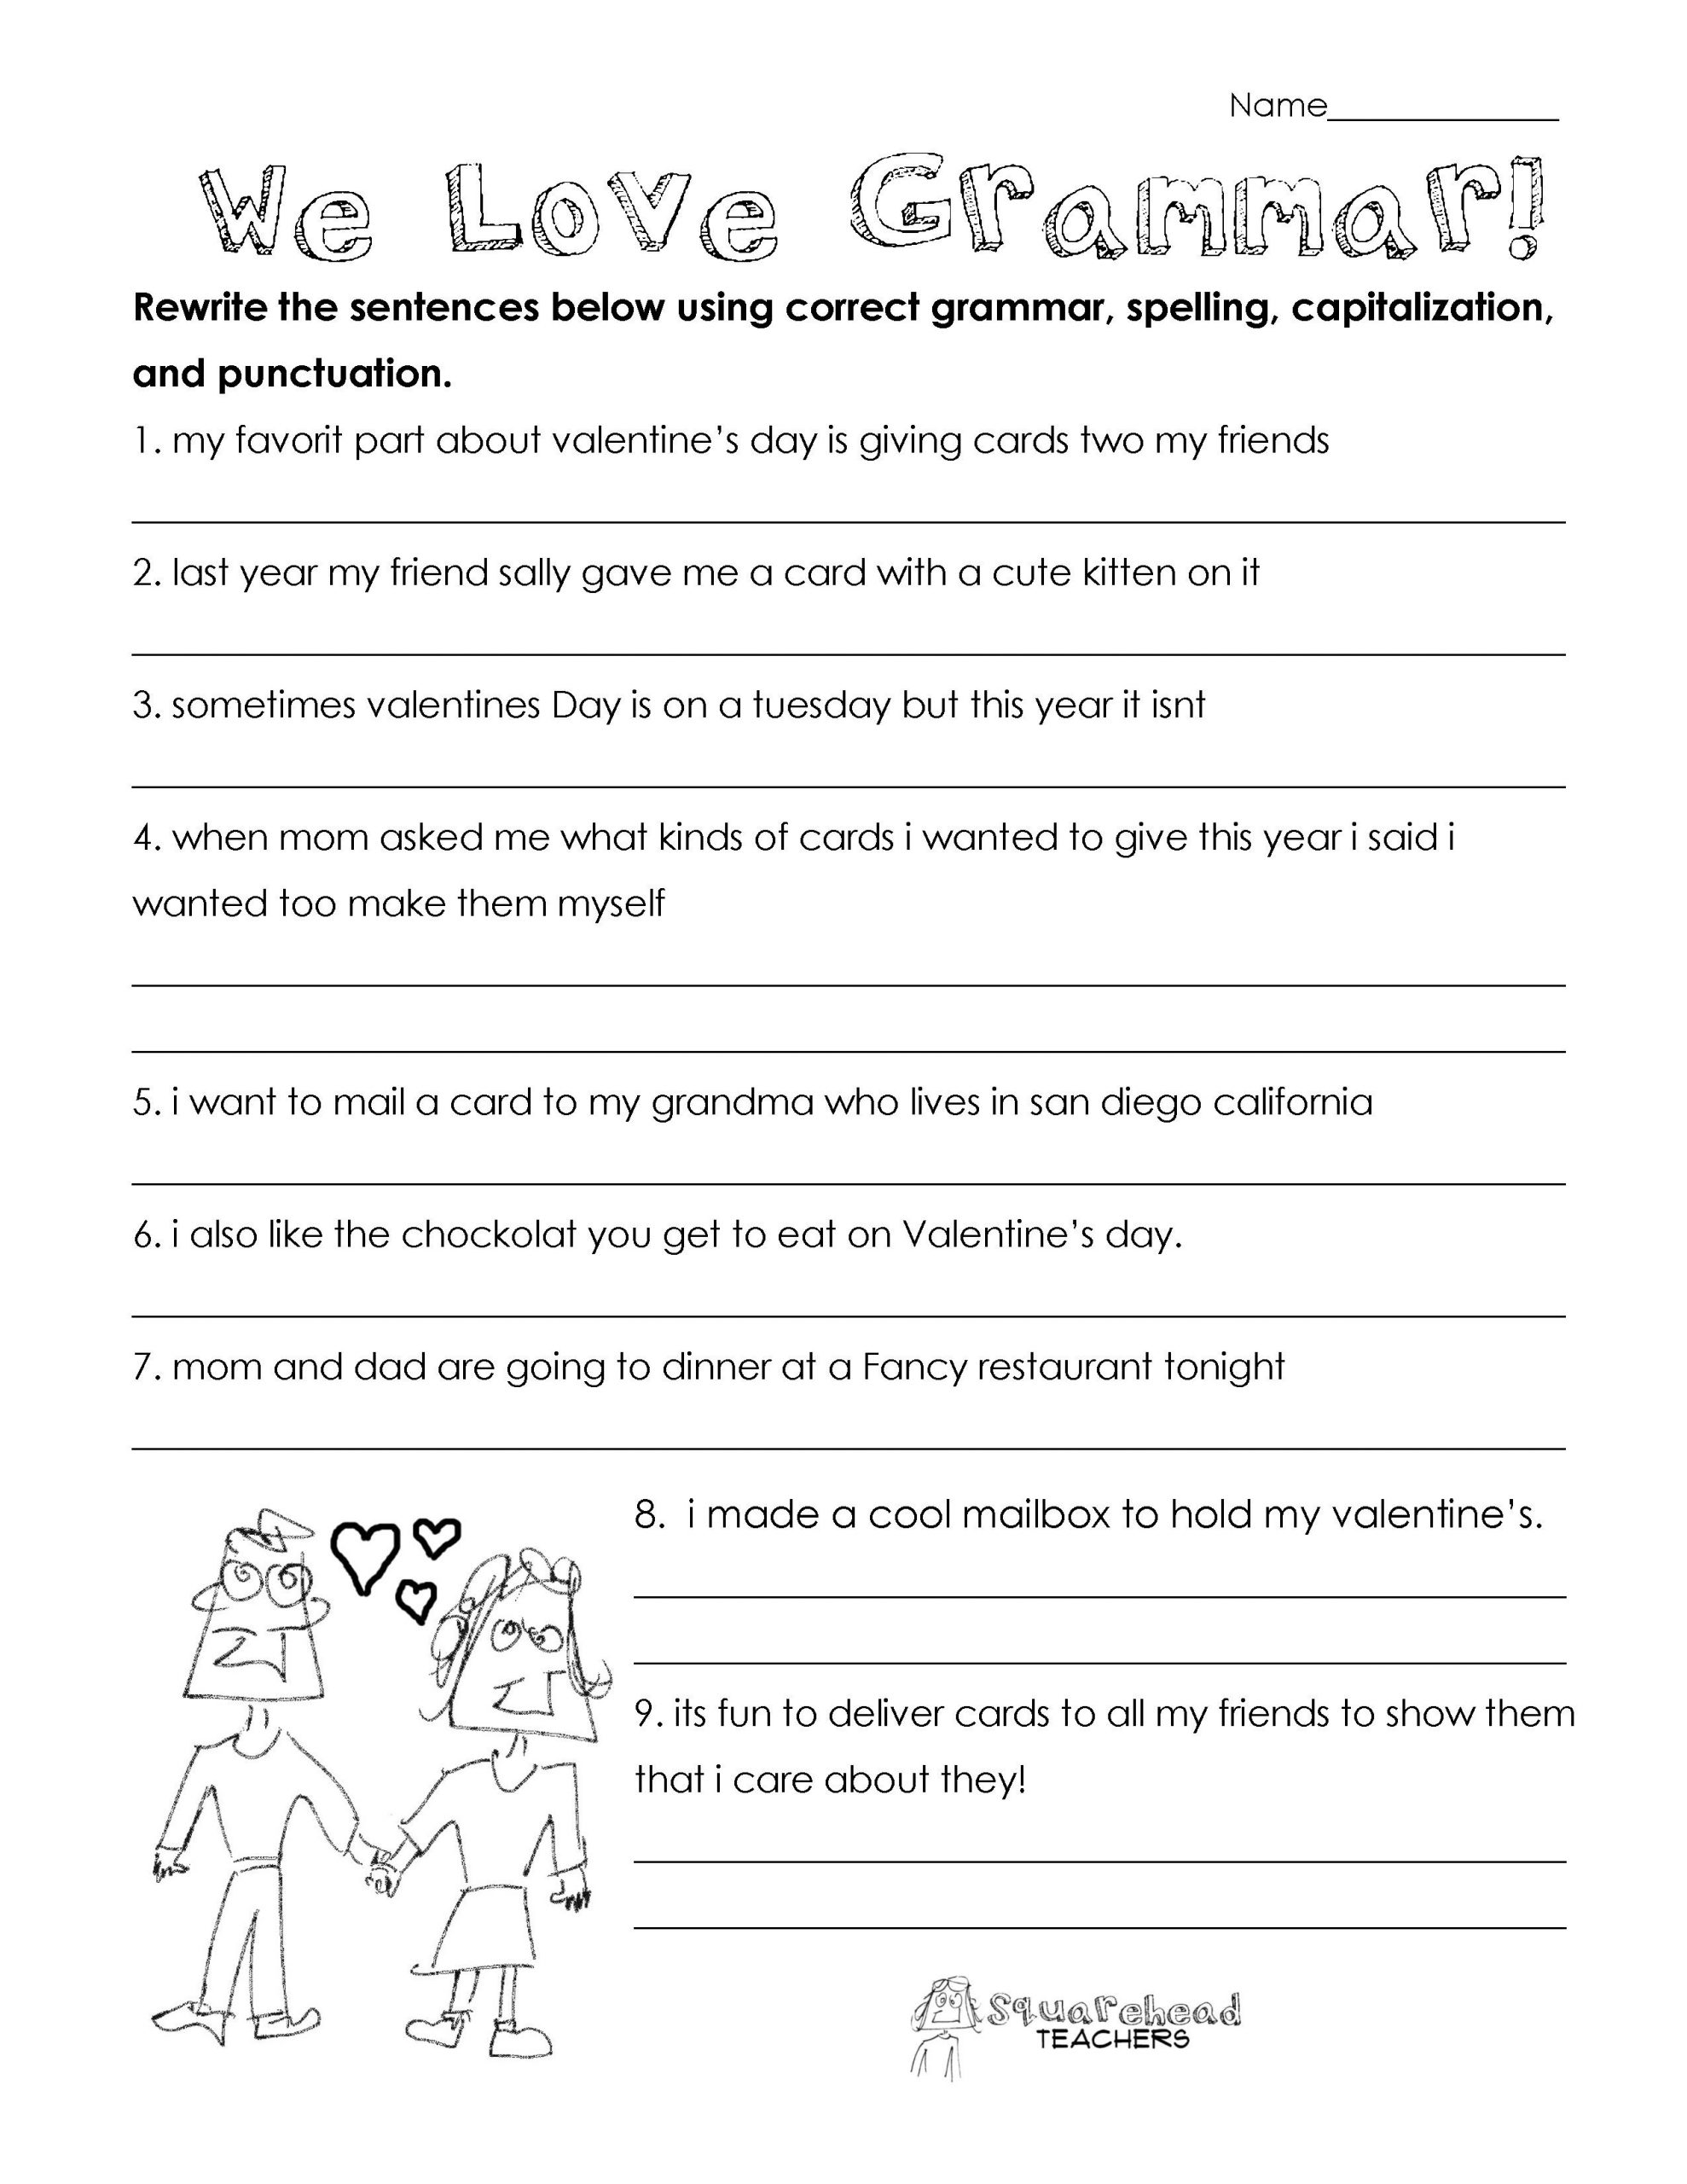 Grammar Worksheets for 3rd Grade Valentine S Day Grammar Free Worksheet for 3rd Grade and Up